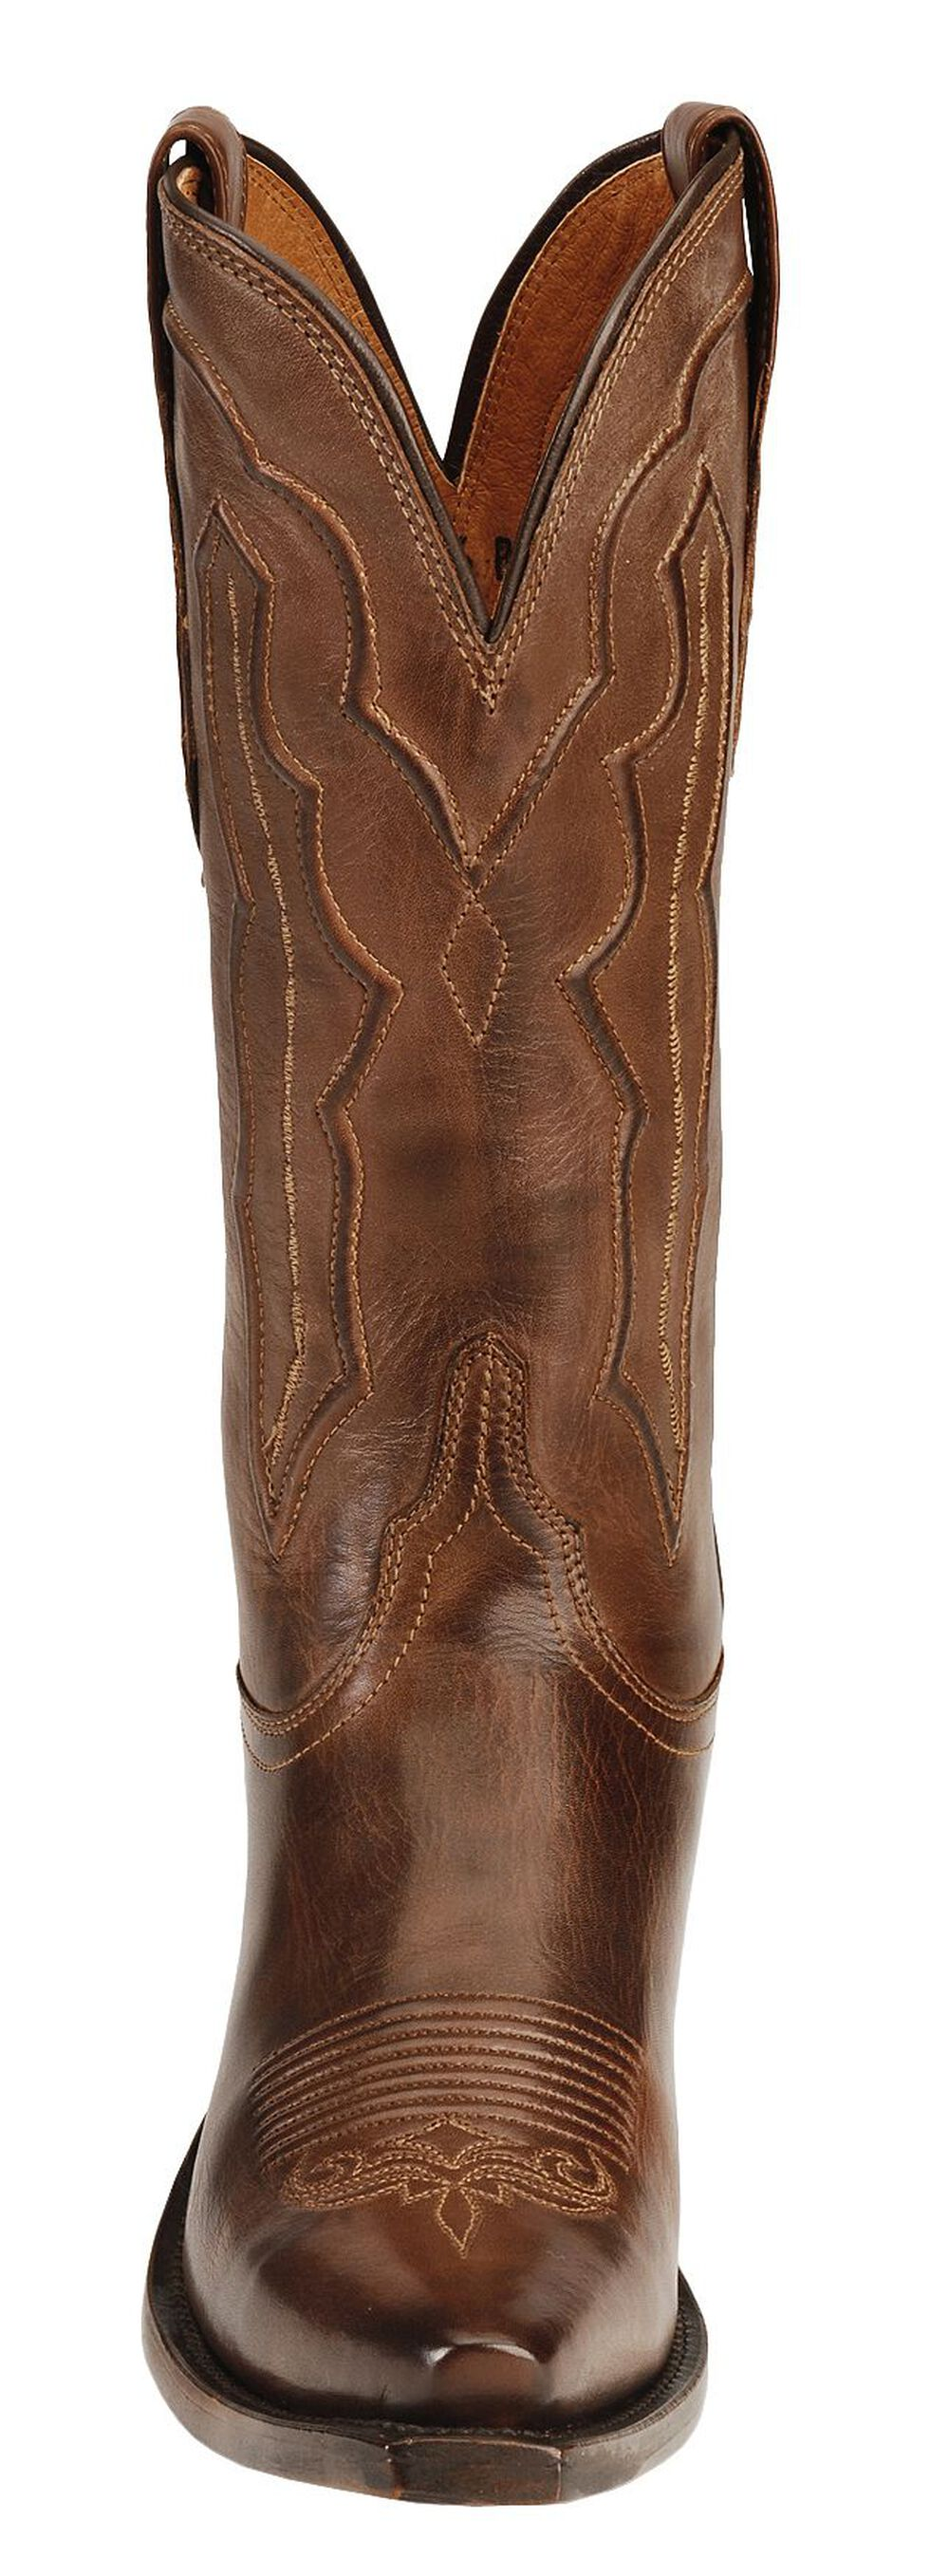 Lucchese Handmade 1883 Grace Cowgirl Boots - Snip Toe, Tan, hi-res